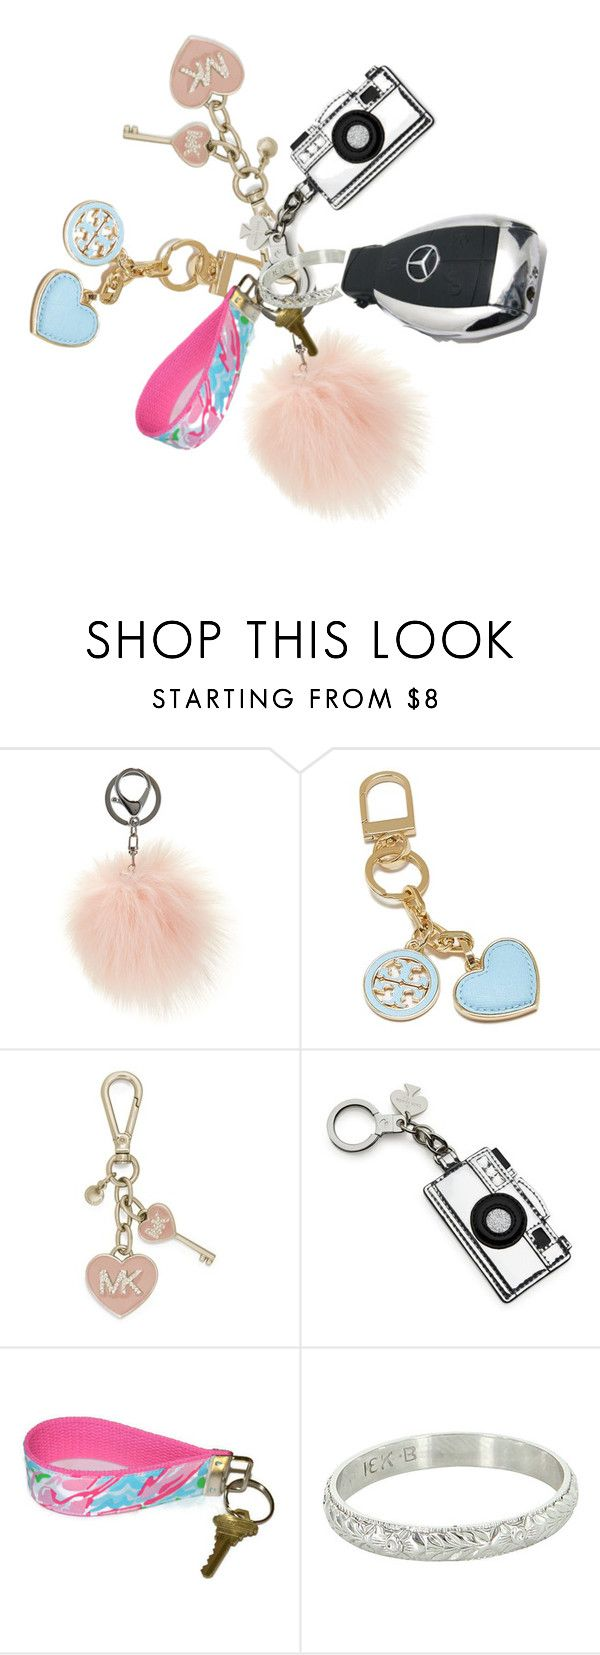 """""""Car Key Contest! Read D!"""" by hanahpeep ❤ liked on Polyvore featuring Adrienne Landau, Tory Burch, MICHAEL Michael Kors, Kate Spade, Lilly Pulitzer, Mercedes-Benz and livskeycontest"""